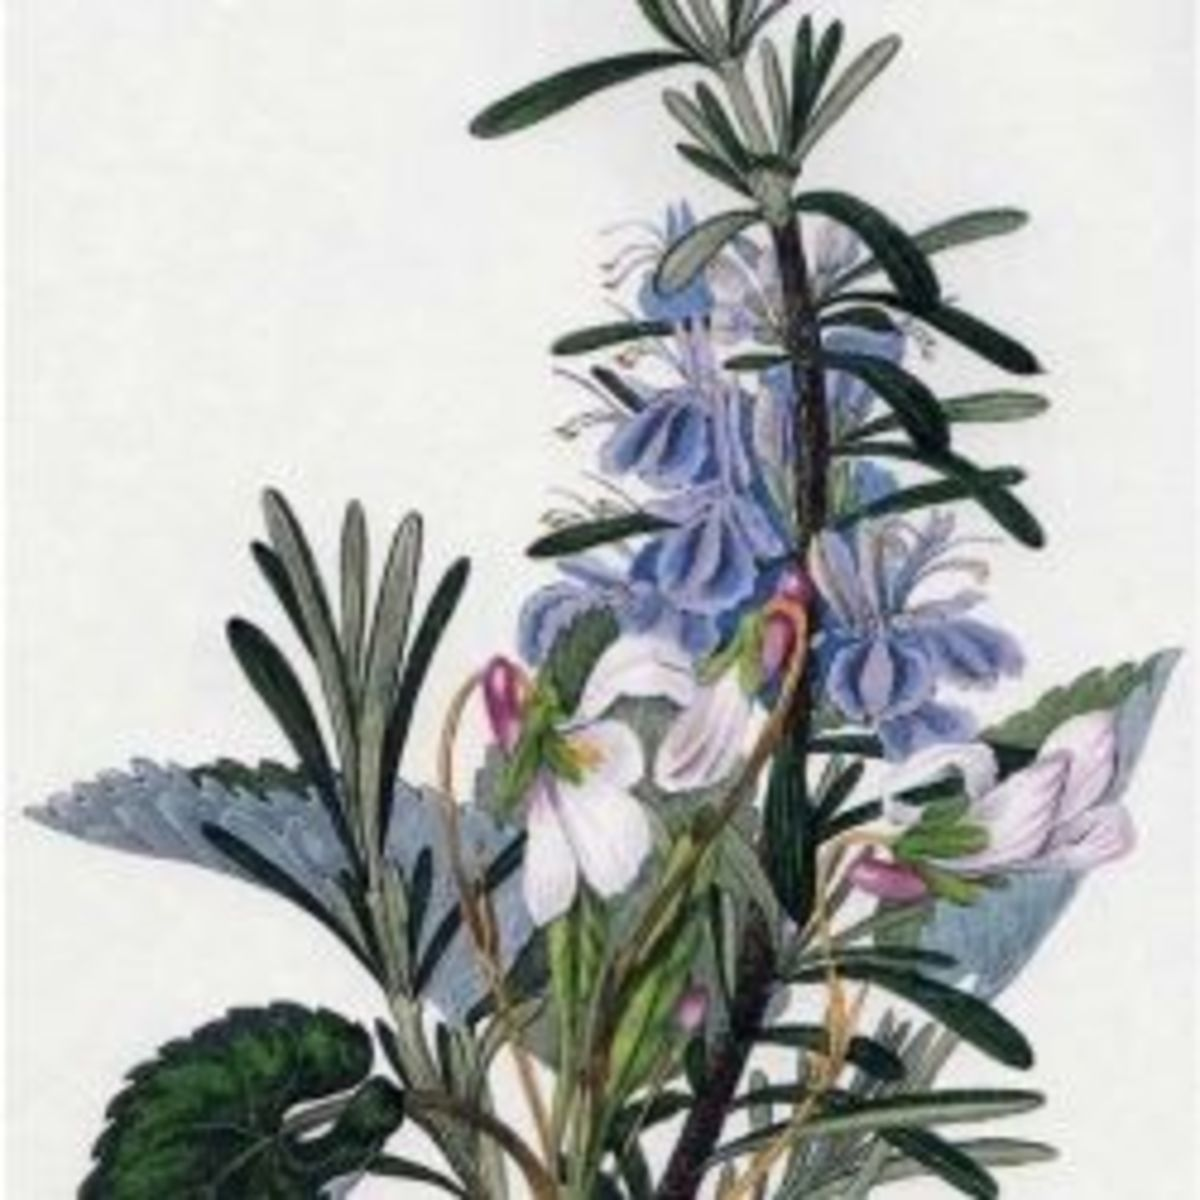 Botanical Art, Capturing The Beauty Of Nature